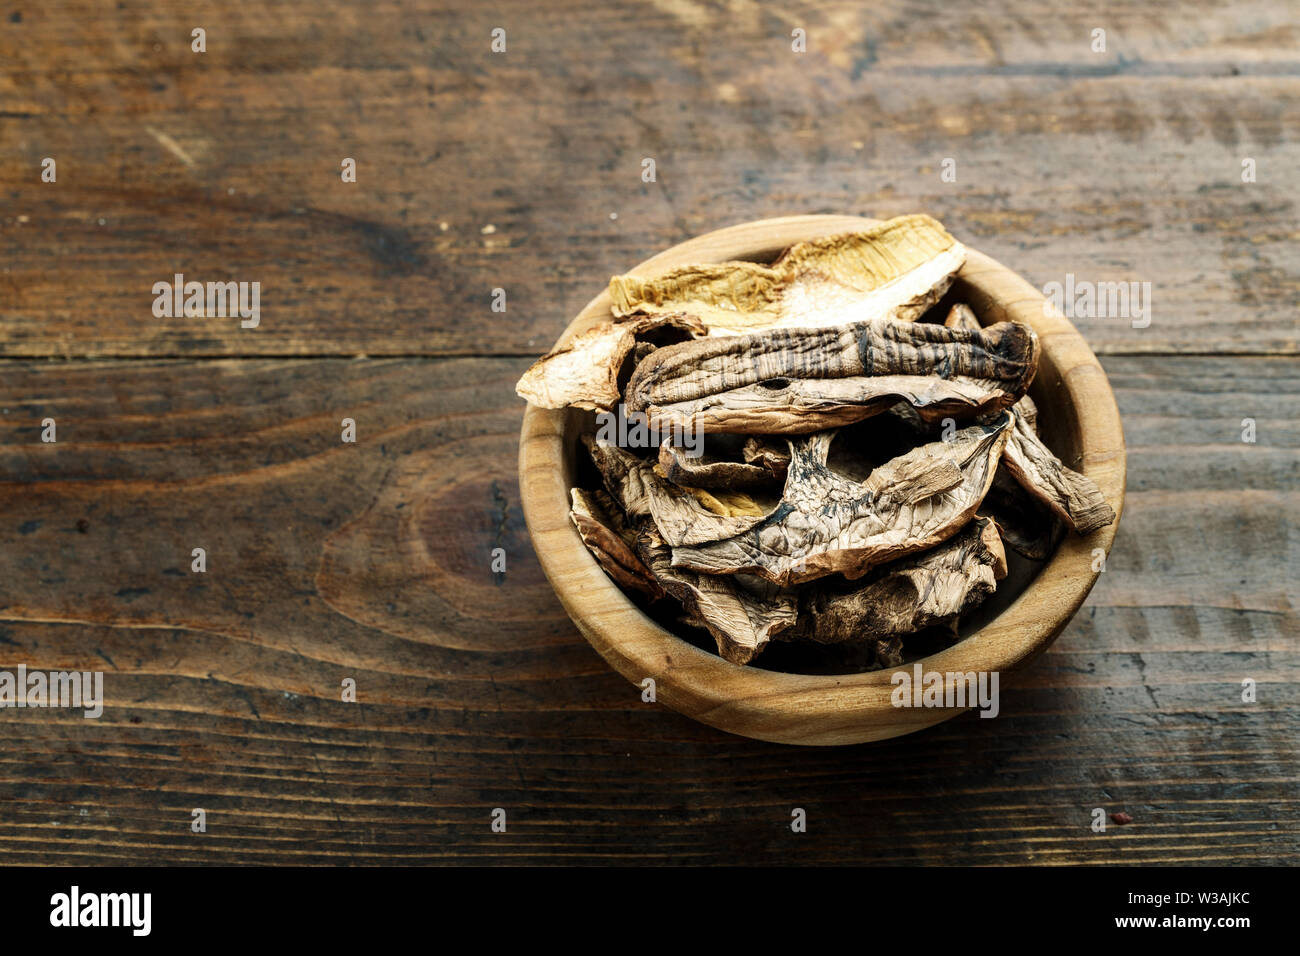 dried mushrooms in a wooden plate on a brown wooden table - Stock Image